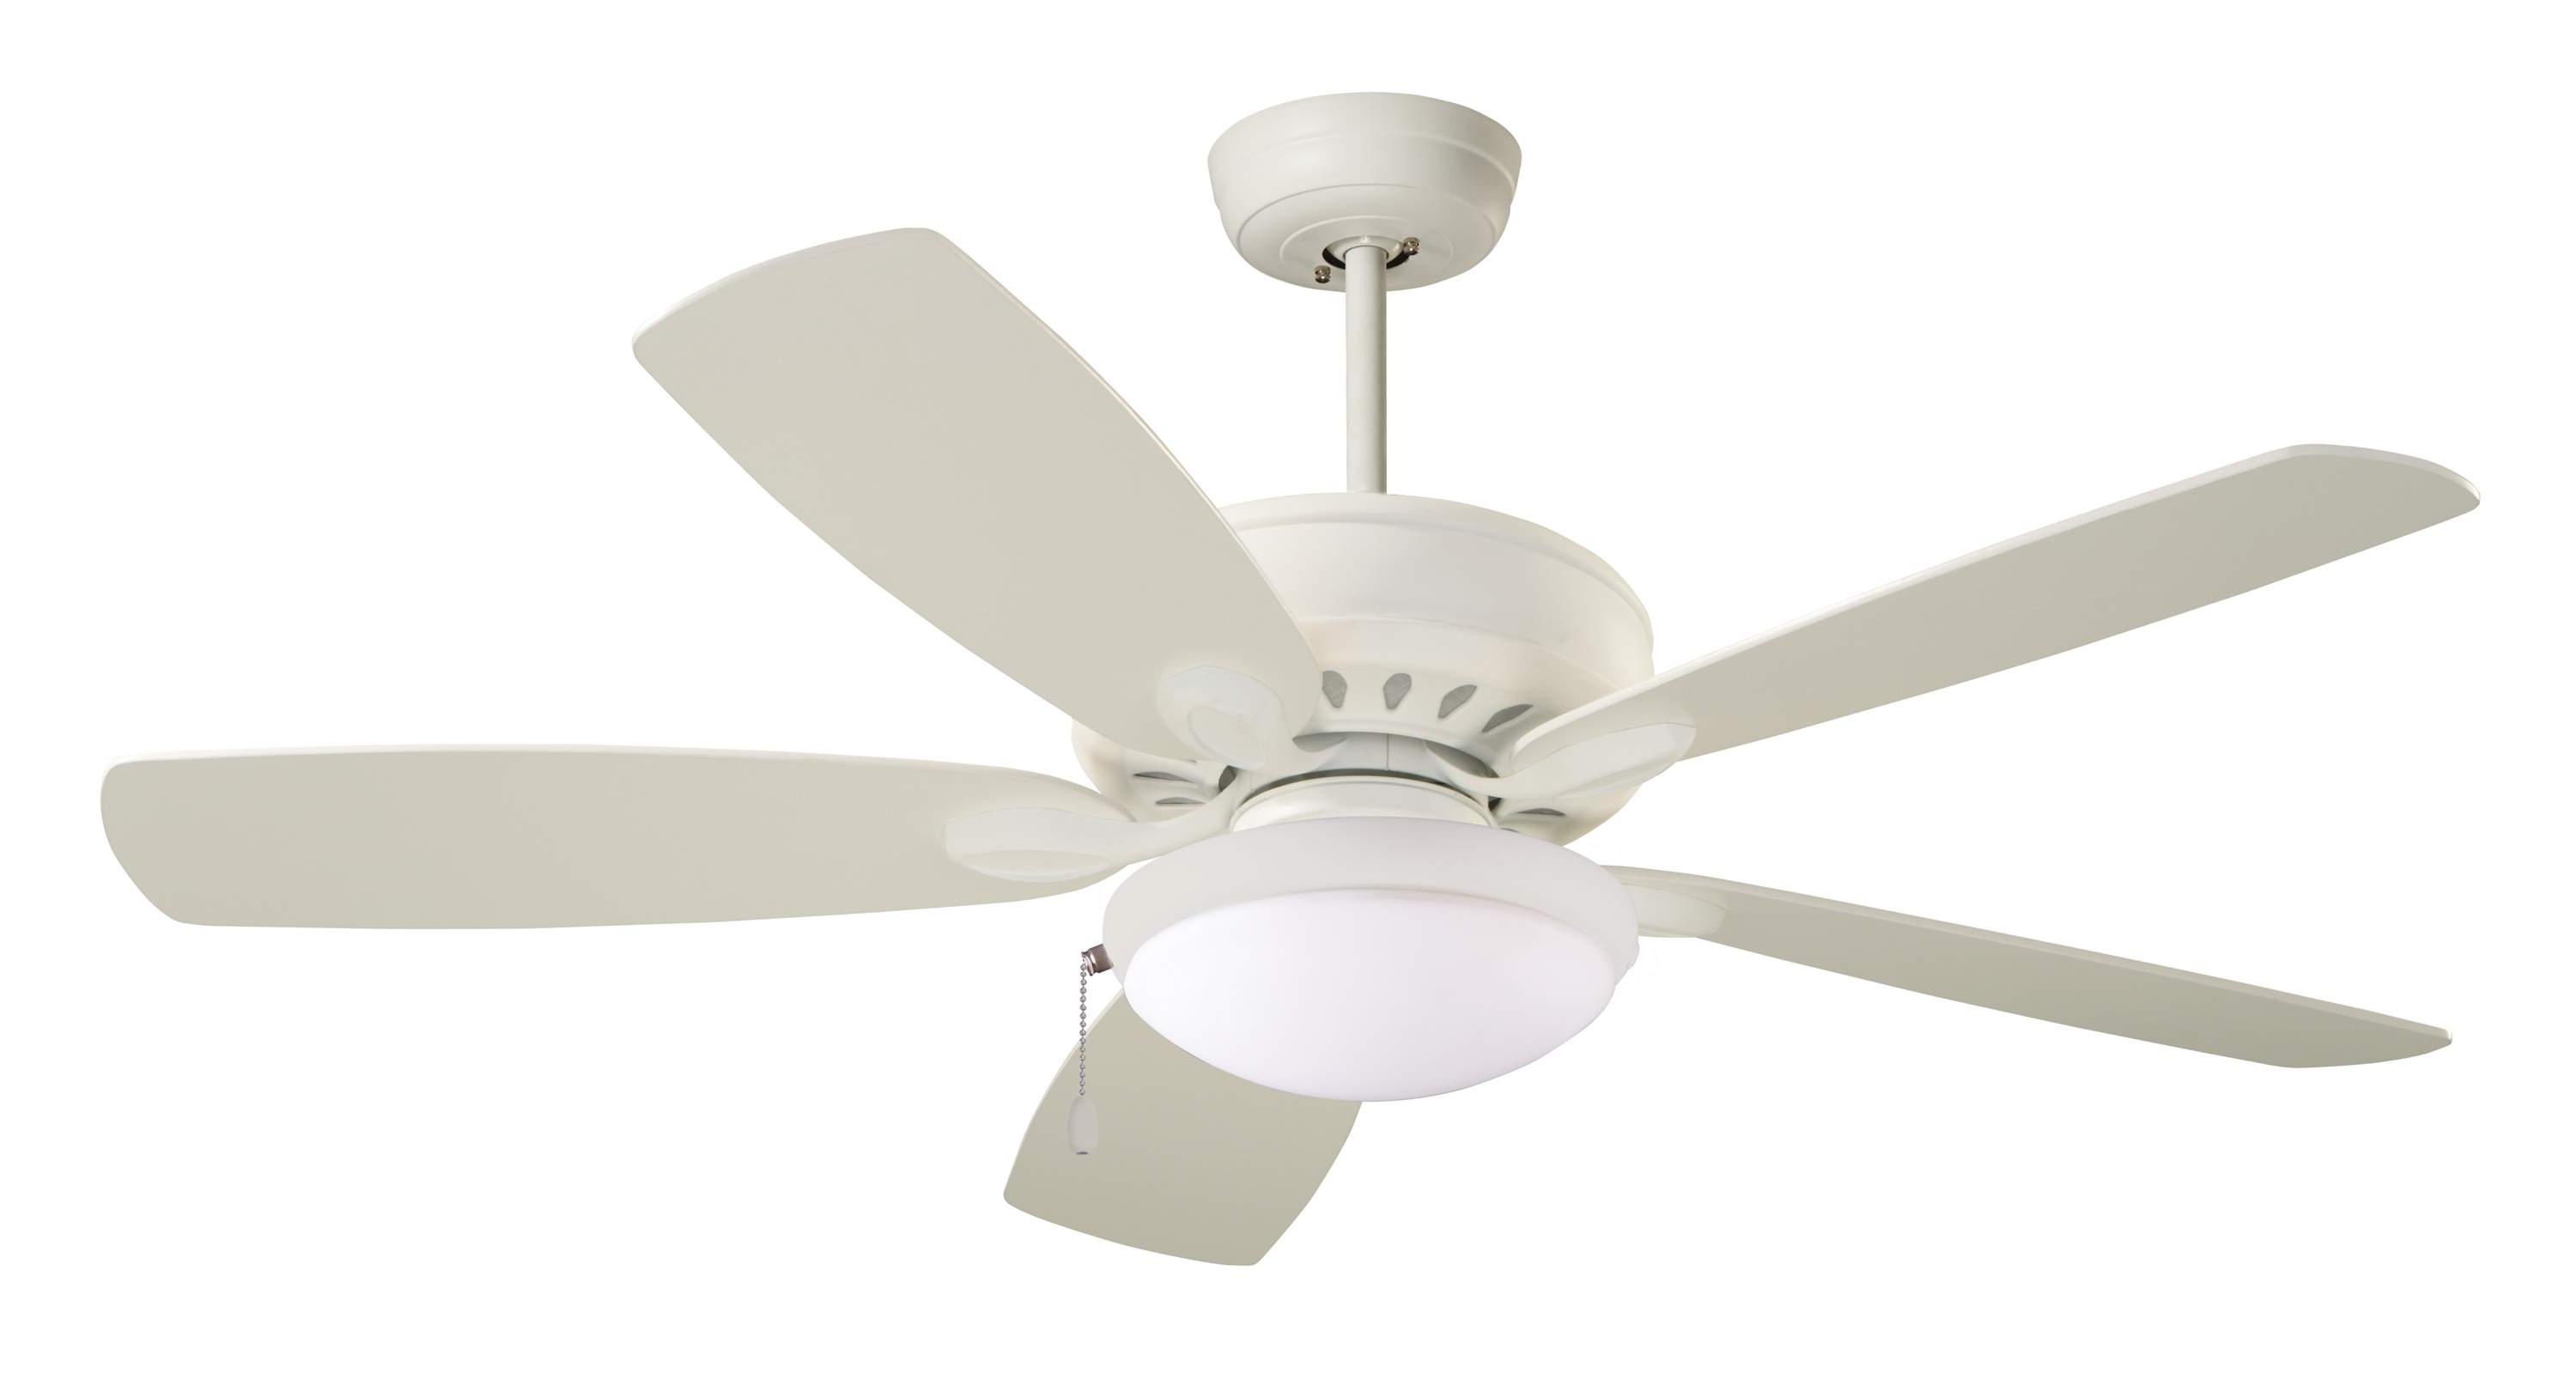 Ceiling: Marvelous Ceiling Fans Menards Lowes Ceiling Fans With Inside Widely Used Outdoor Ceiling Fans At Menards (View 5 of 20)